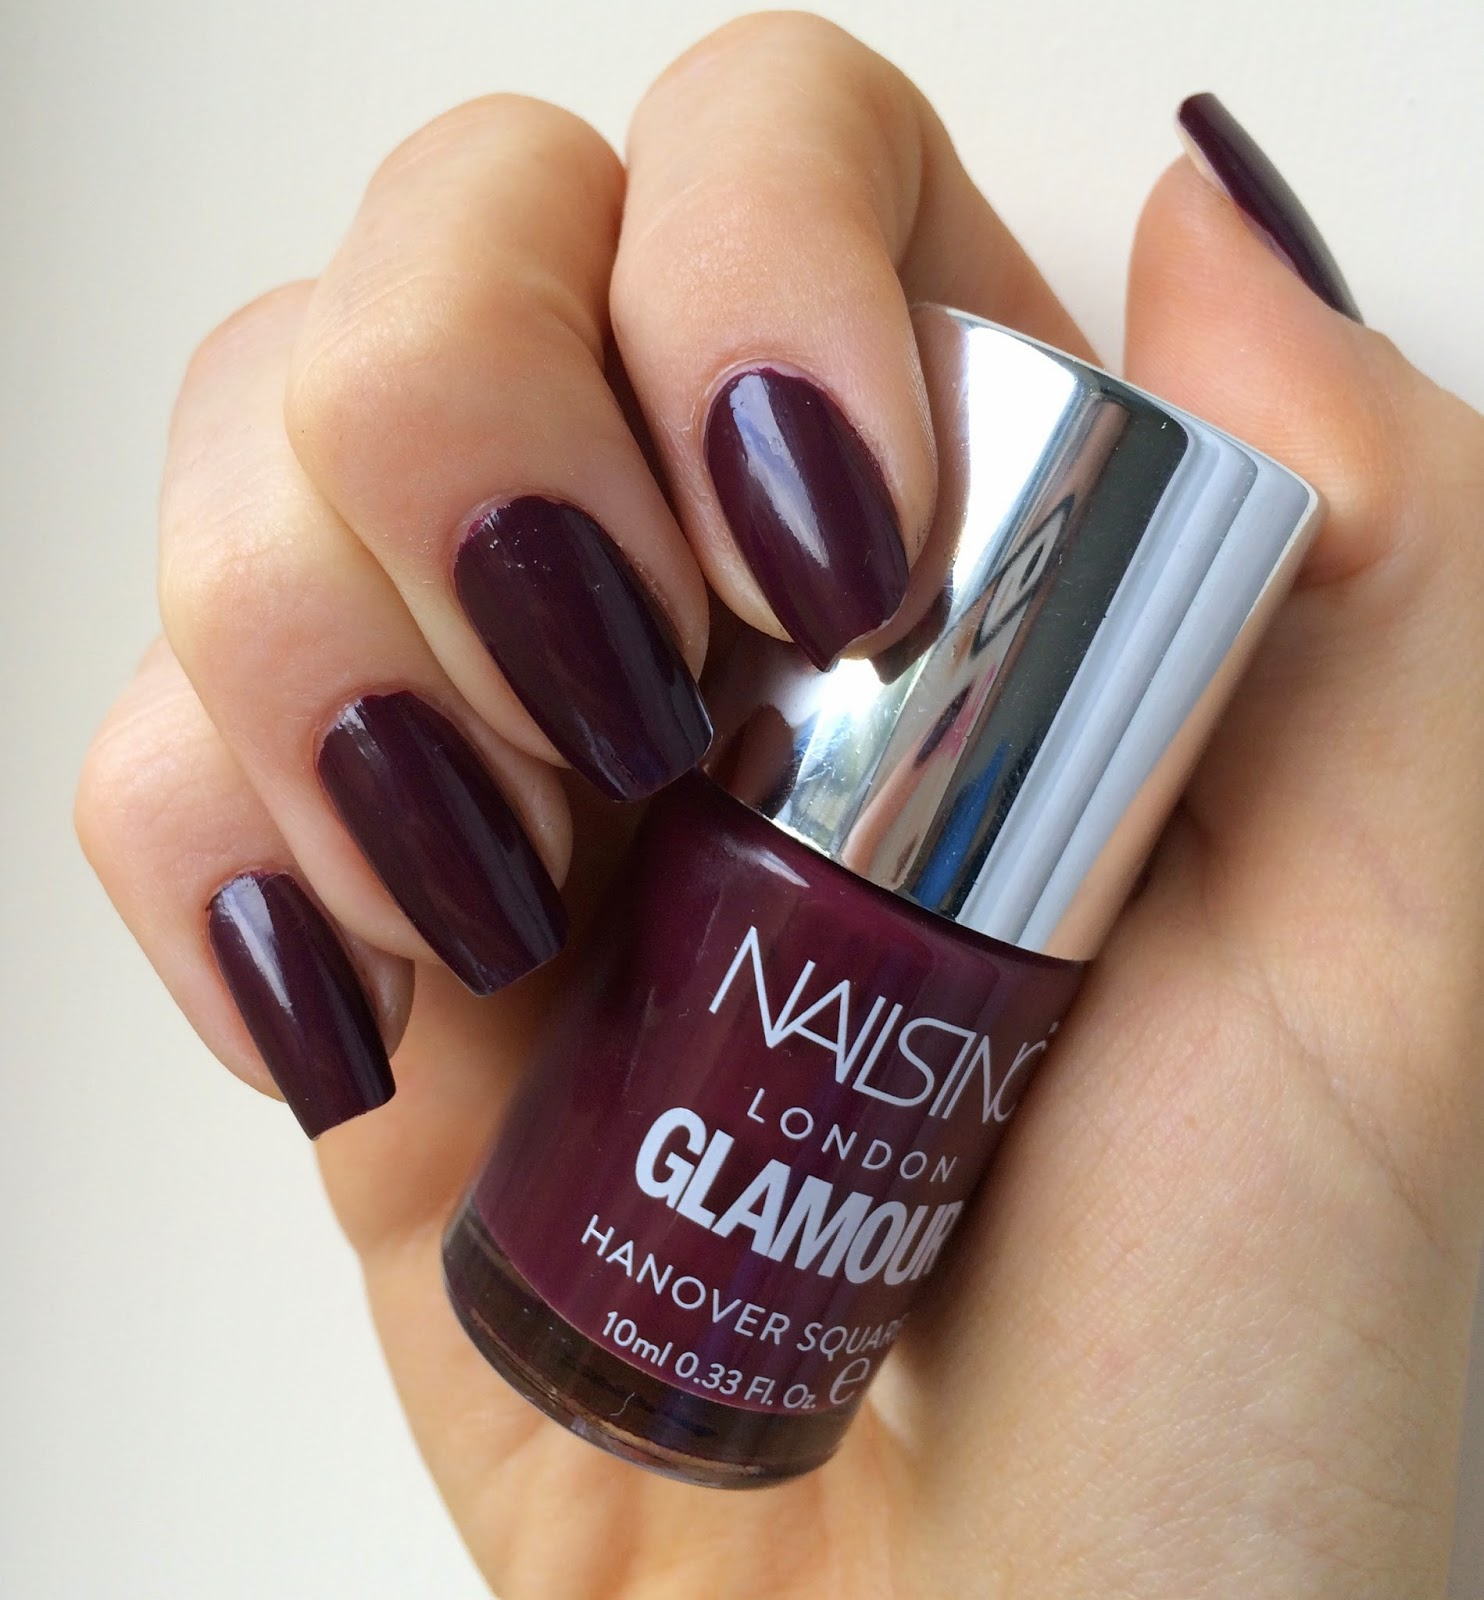 glamour-magazine-nails-inc-nail-polish-hanover-square-swatches-2014